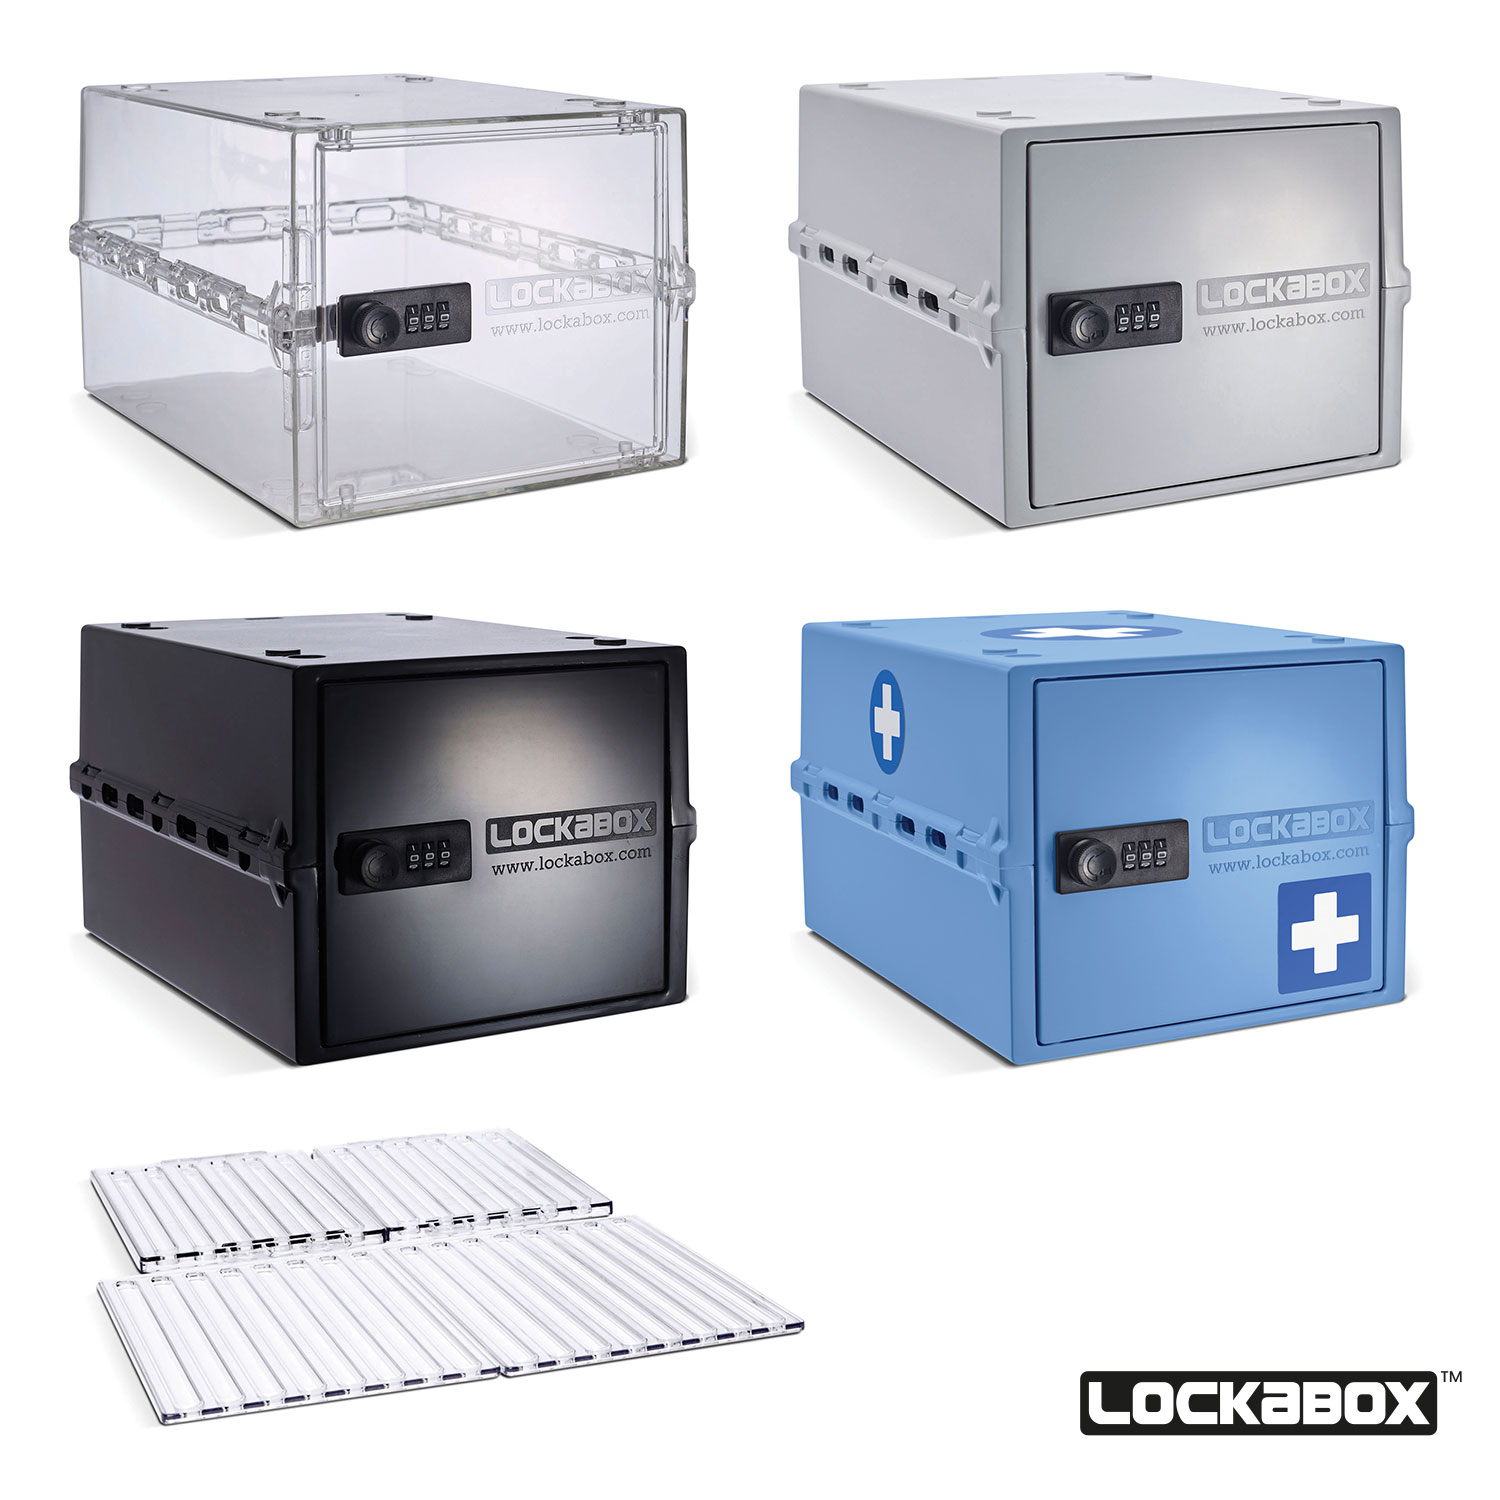 Lockabox-Product-Collection-1500×1500